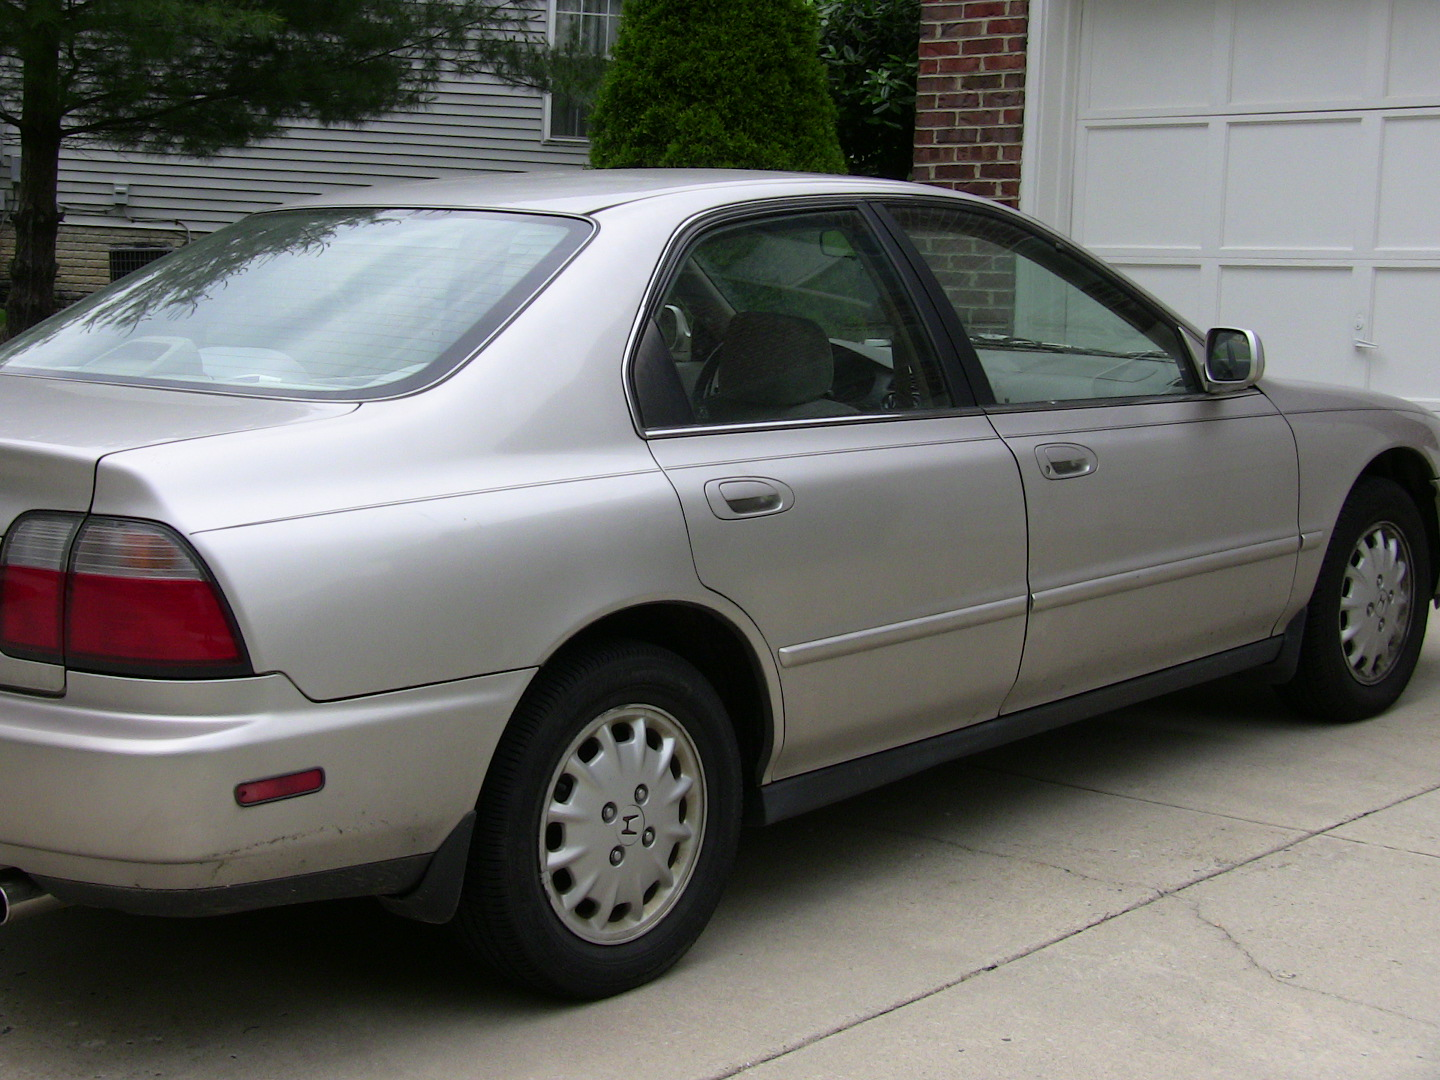 Wk Lg additionally Honda Accord Sedan Ex Fq Oem in addition Honda Accord Sedan Ex L V S Oem furthermore  furthermore Honda Accord Pic. on used 1995 honda accord ex sedan